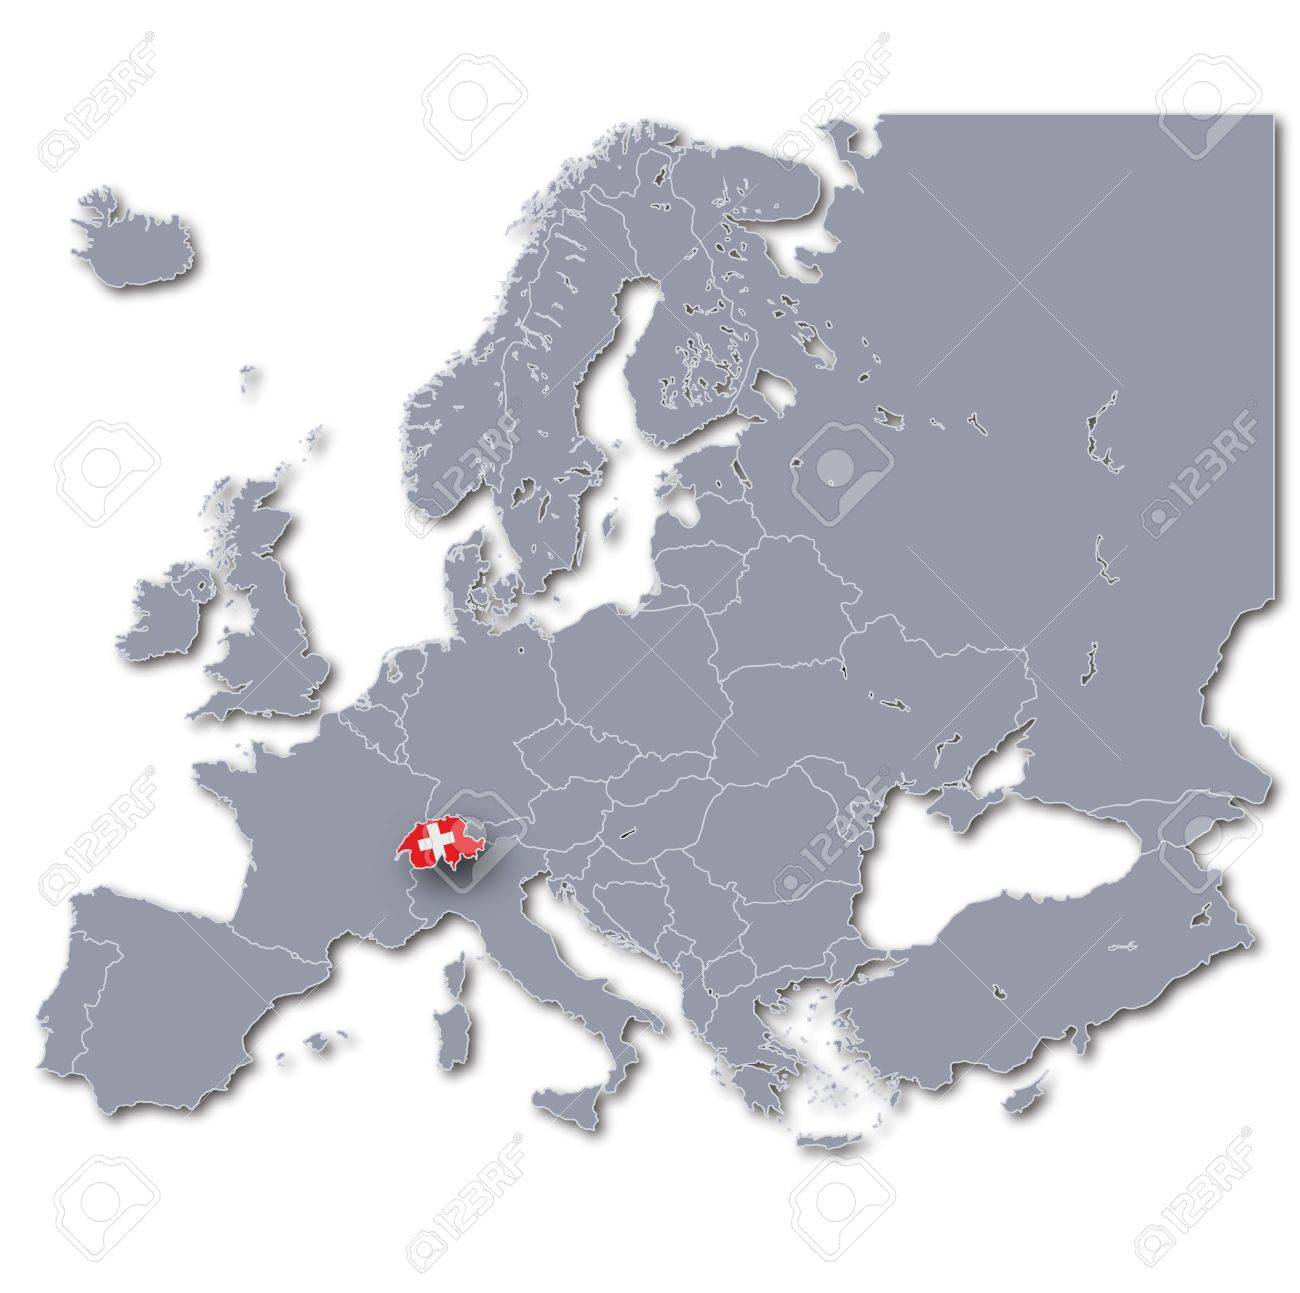 Map Of Europe With Switzerland Stock Photo Picture And Royalty Free